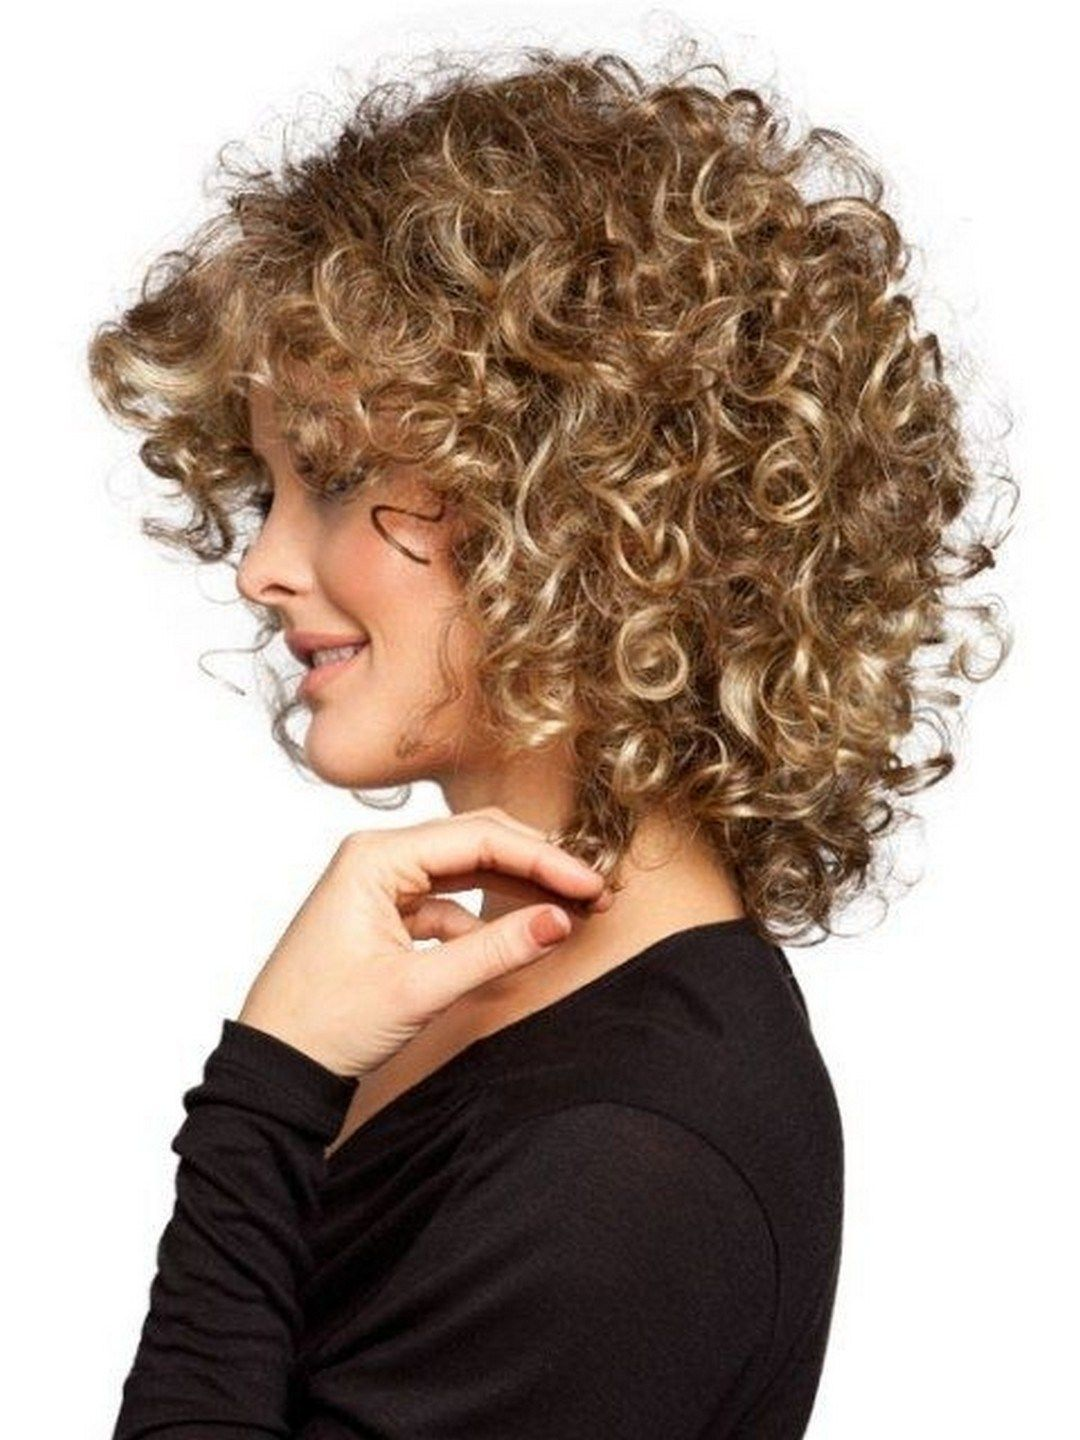 Hairstyles For Frizzy Hair Brilliant Amazing Naturally Curly Hair Inspirations 274  Naturally Curly